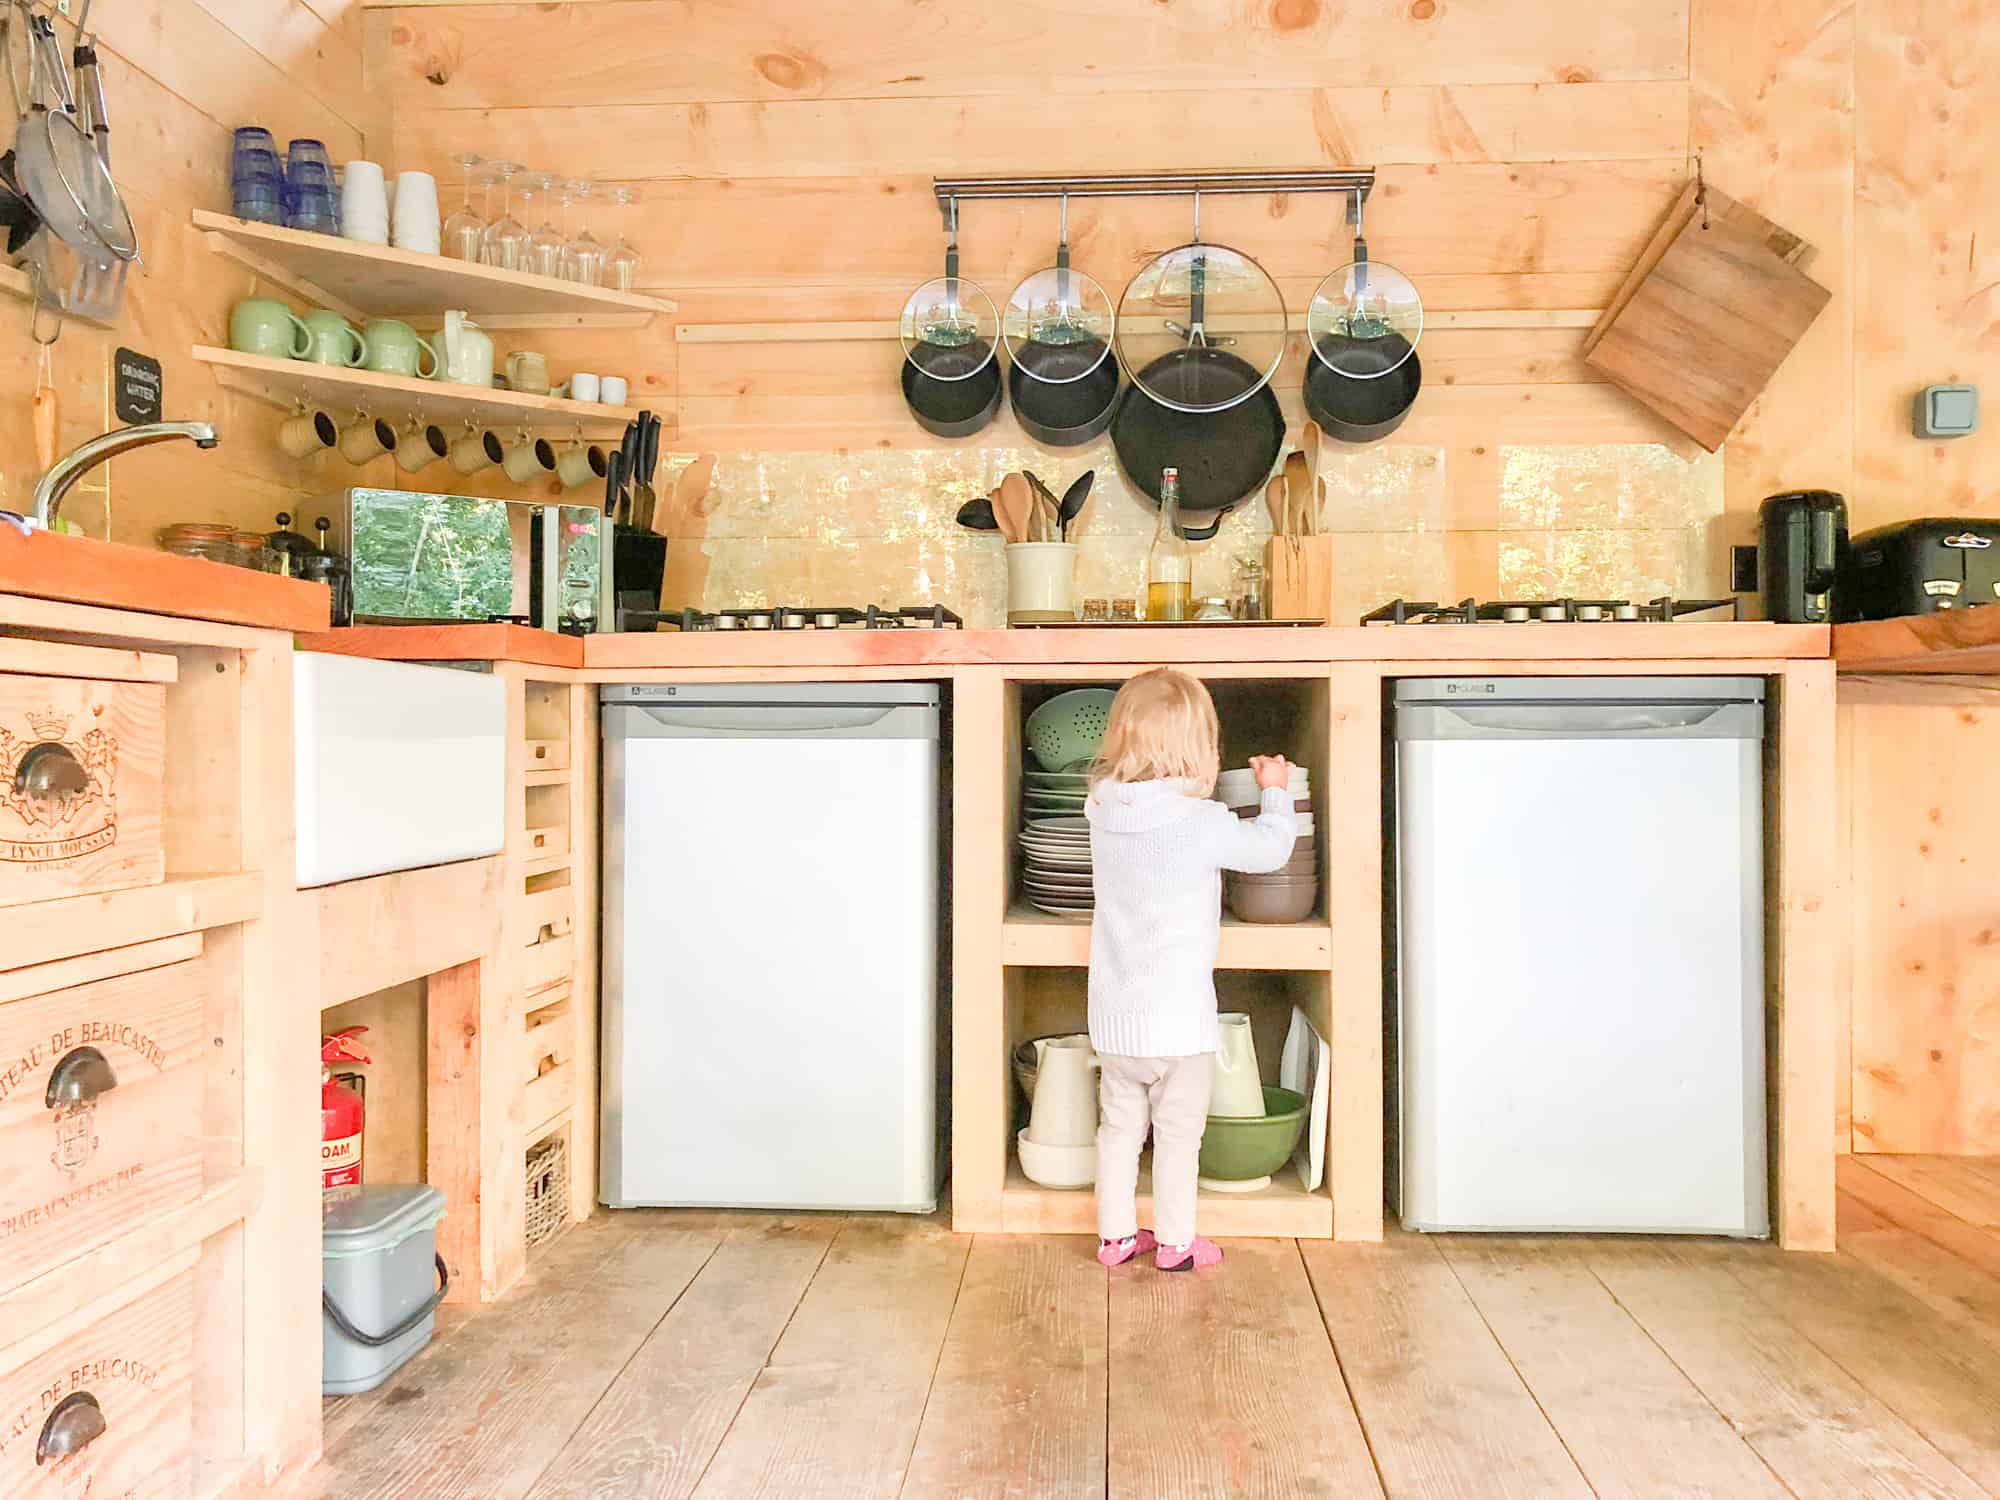 Glamping checklist - inside kitchen glamping with small child